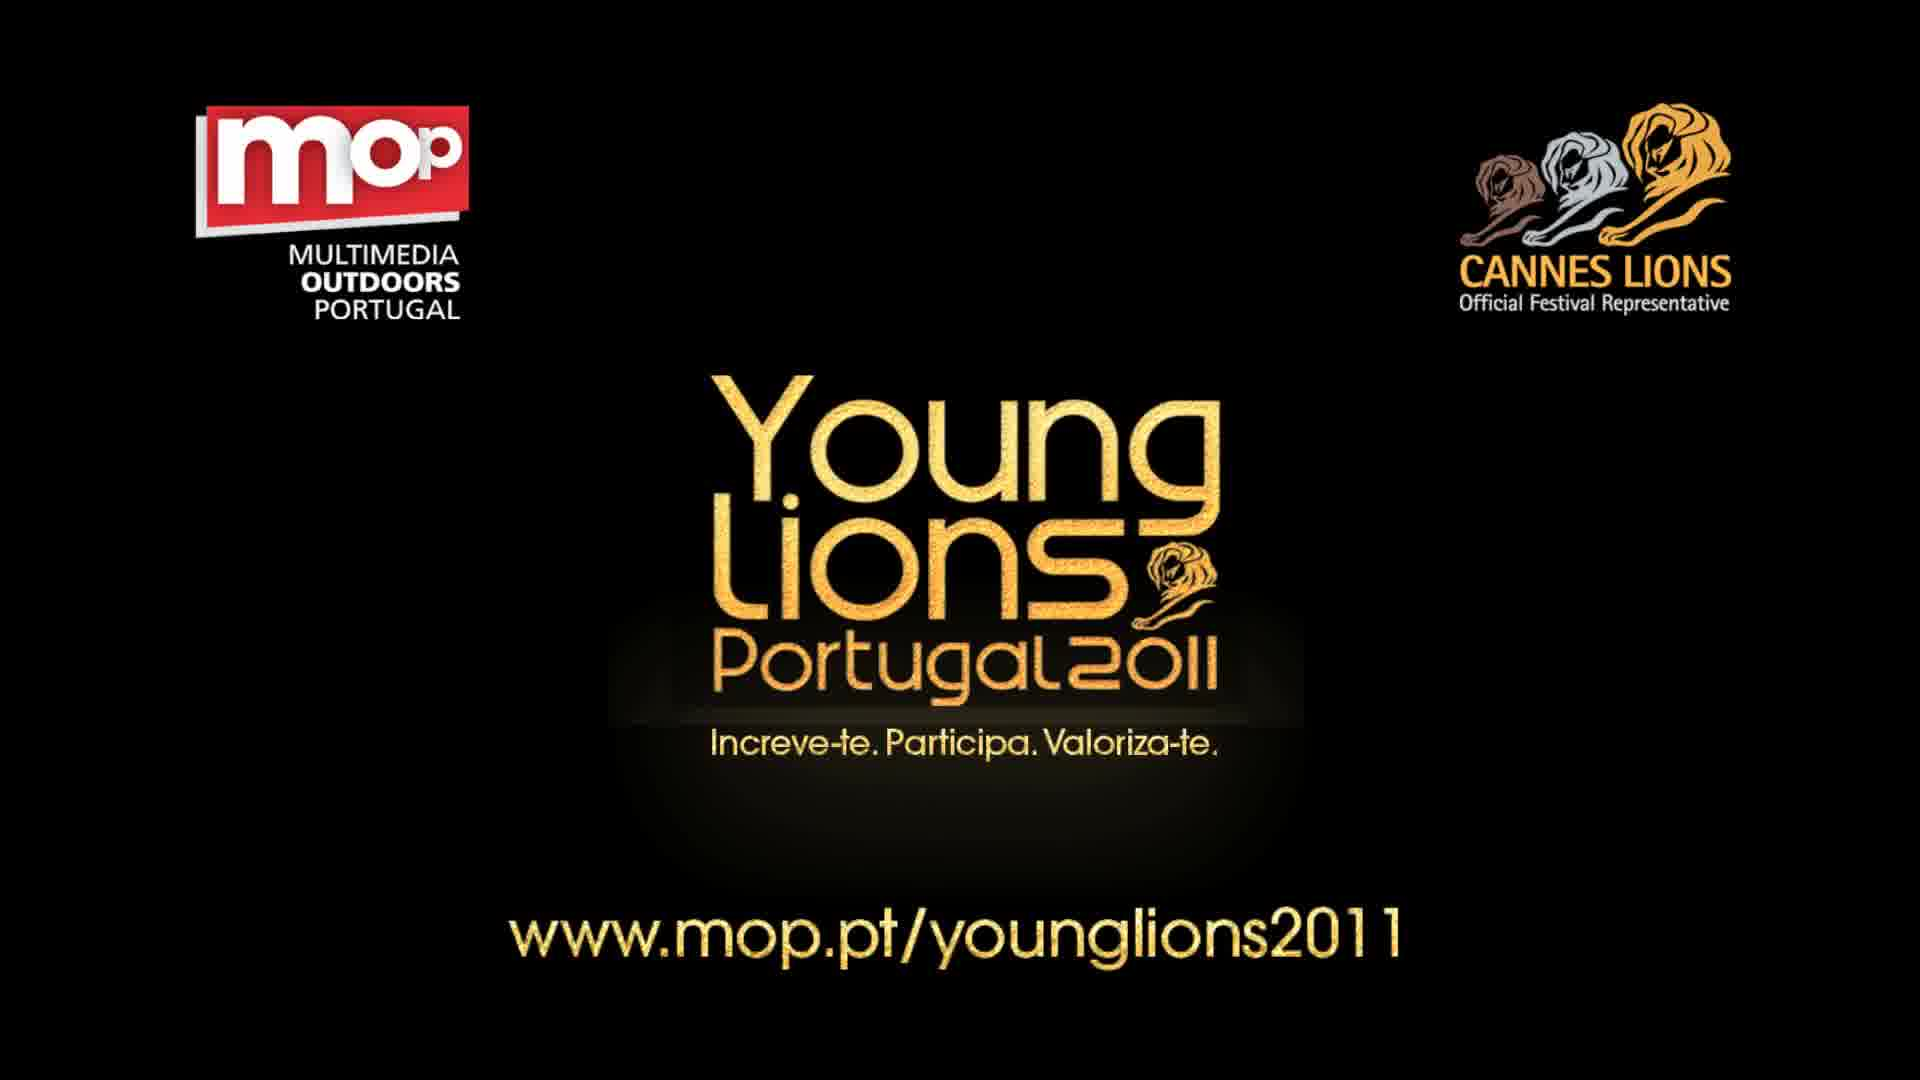 YOUNGLIONS_h264